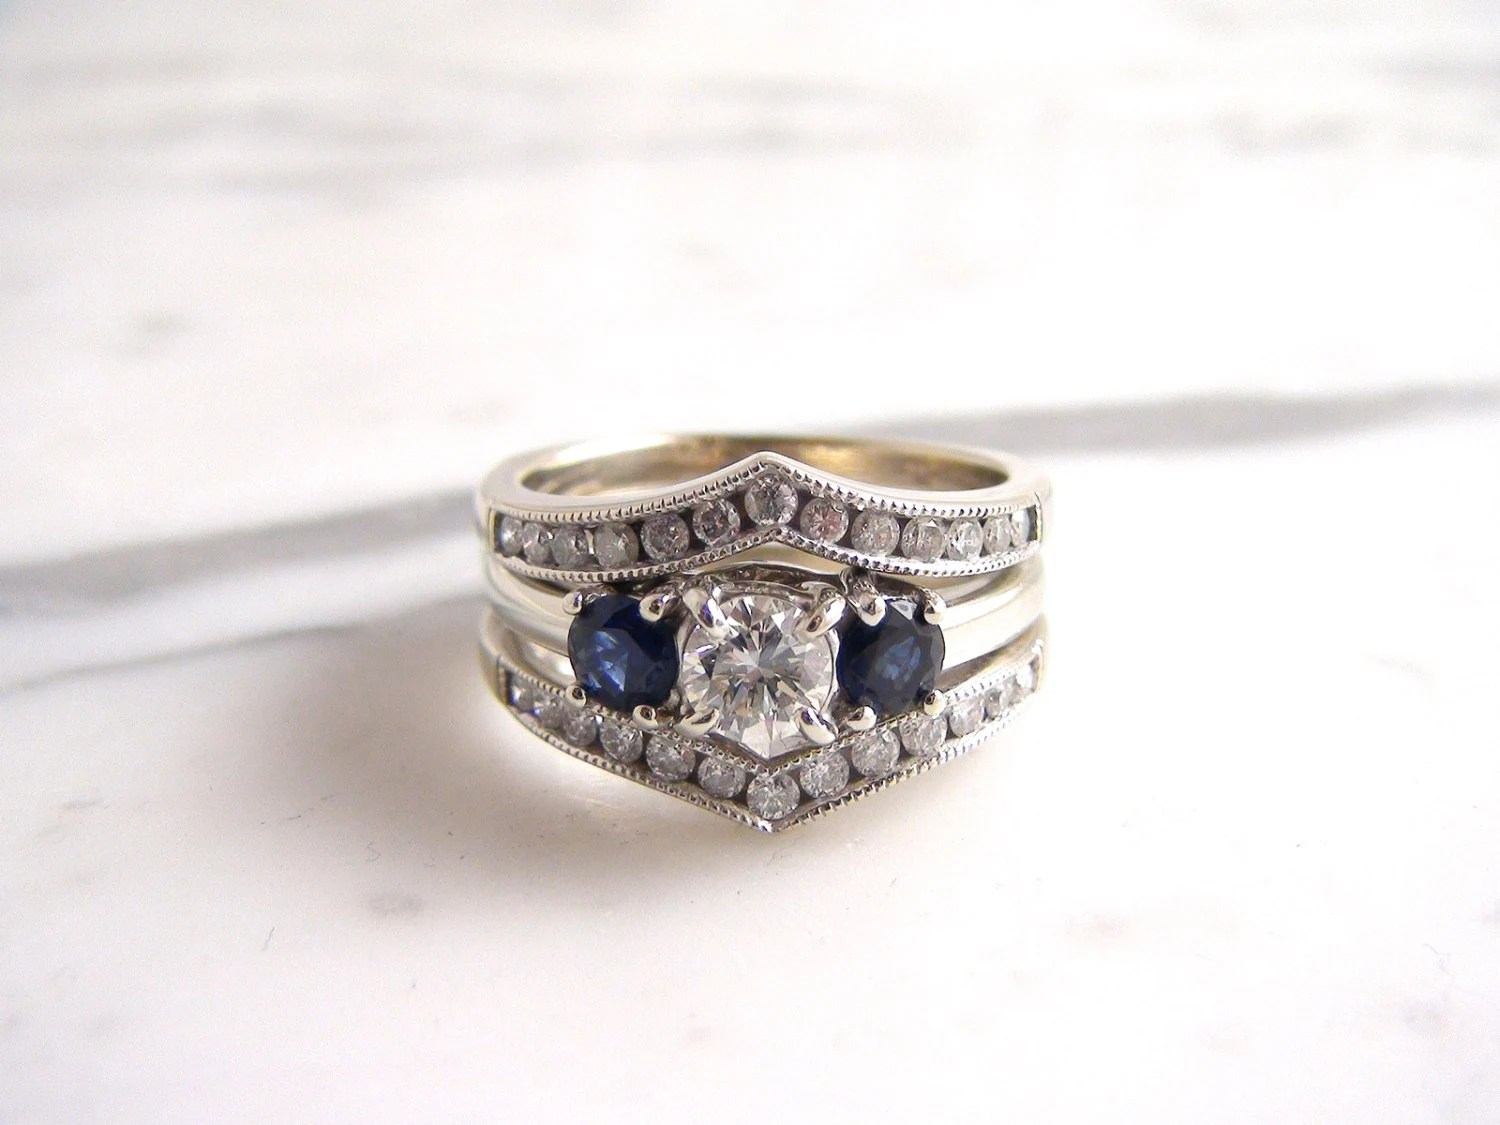 sapphire ring guard wedding ring guard Vintage Diamond and Sapphire Engagement Ring 14K White Gold Wedding Set Ring Guard 3 Stone